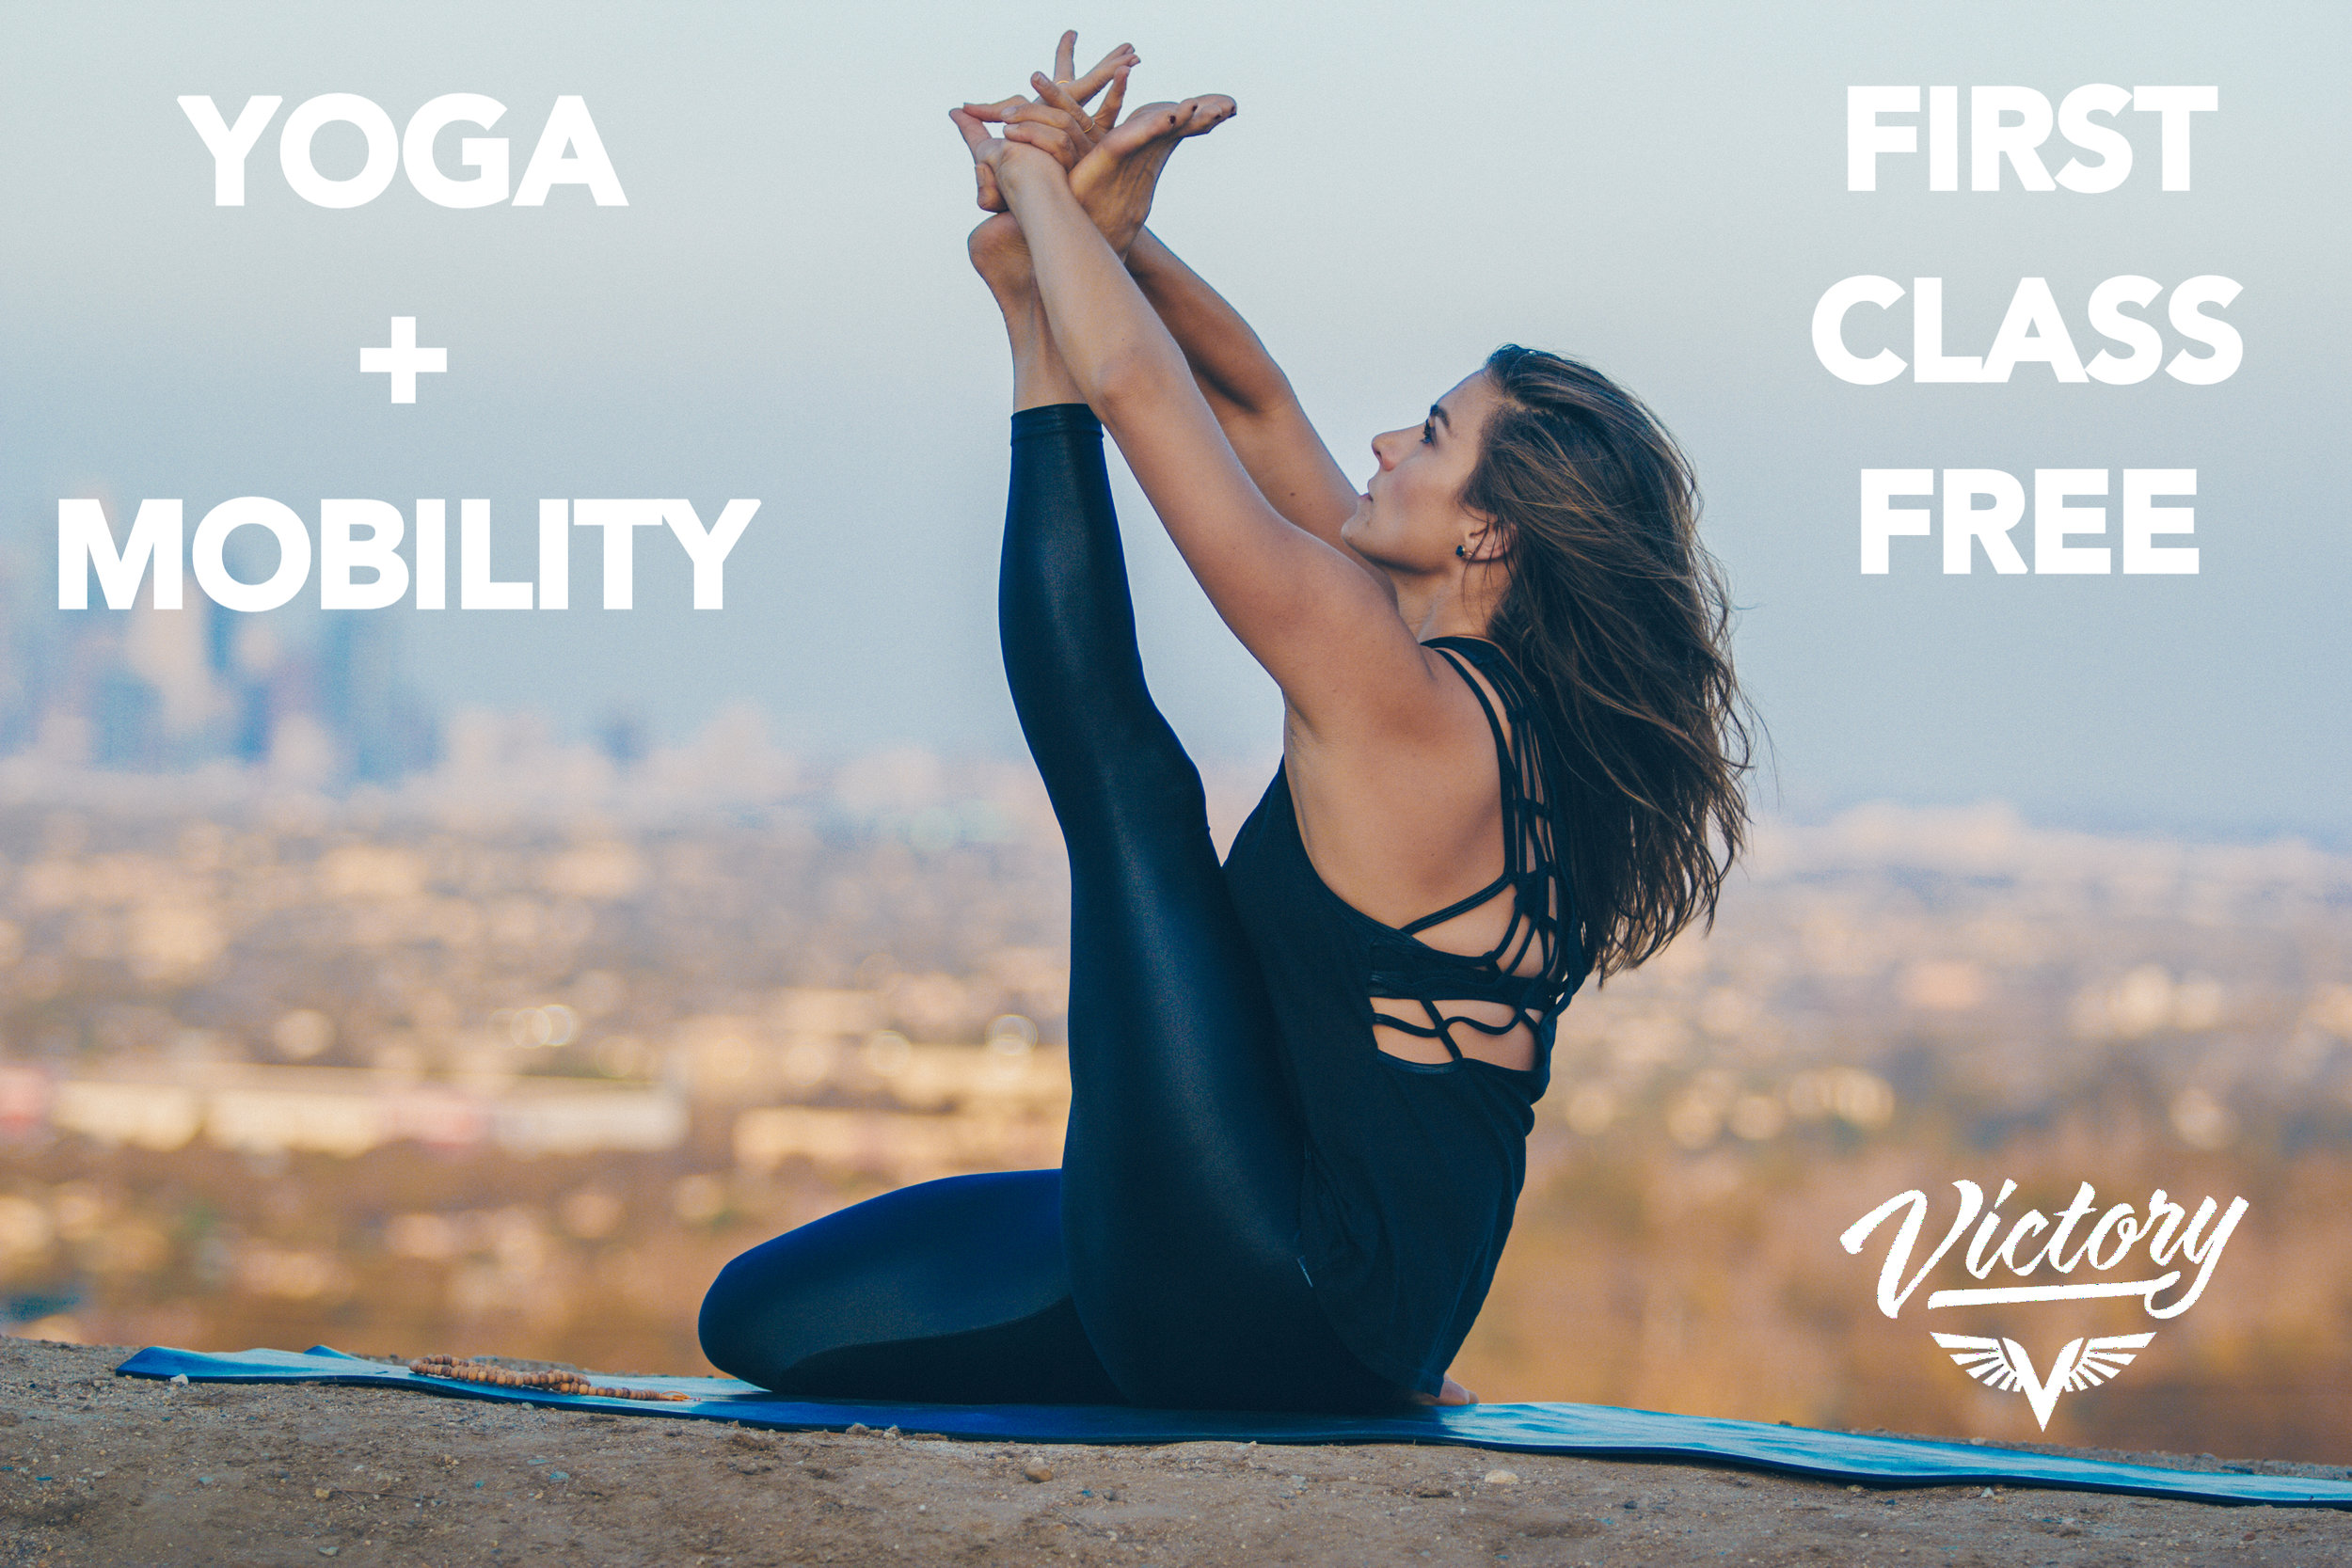 Yoga and Mobility Flyer 1.19.18.JPG